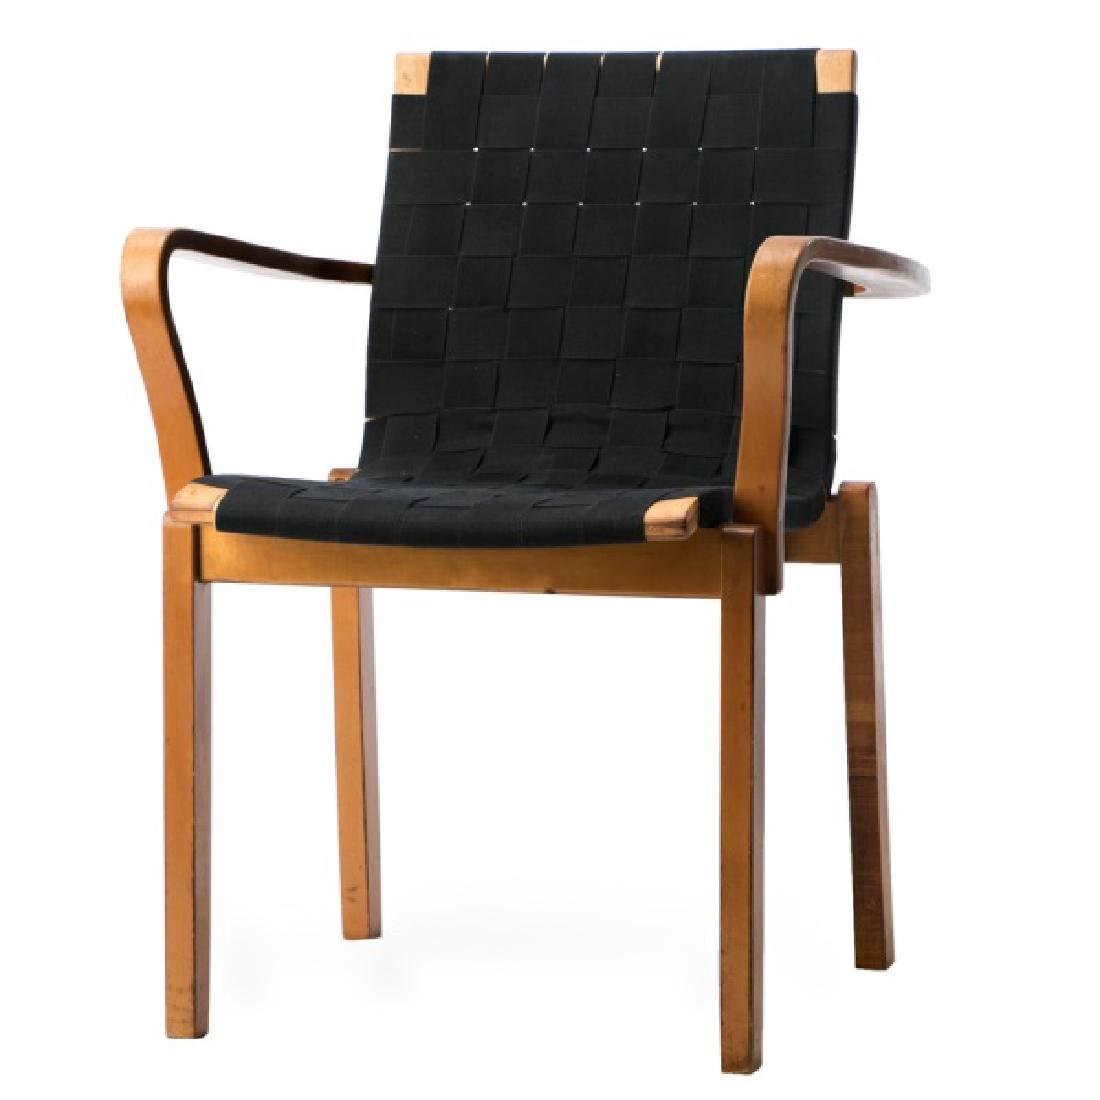 Alvar Aalto For Finsven, Model 21 Arm Chair